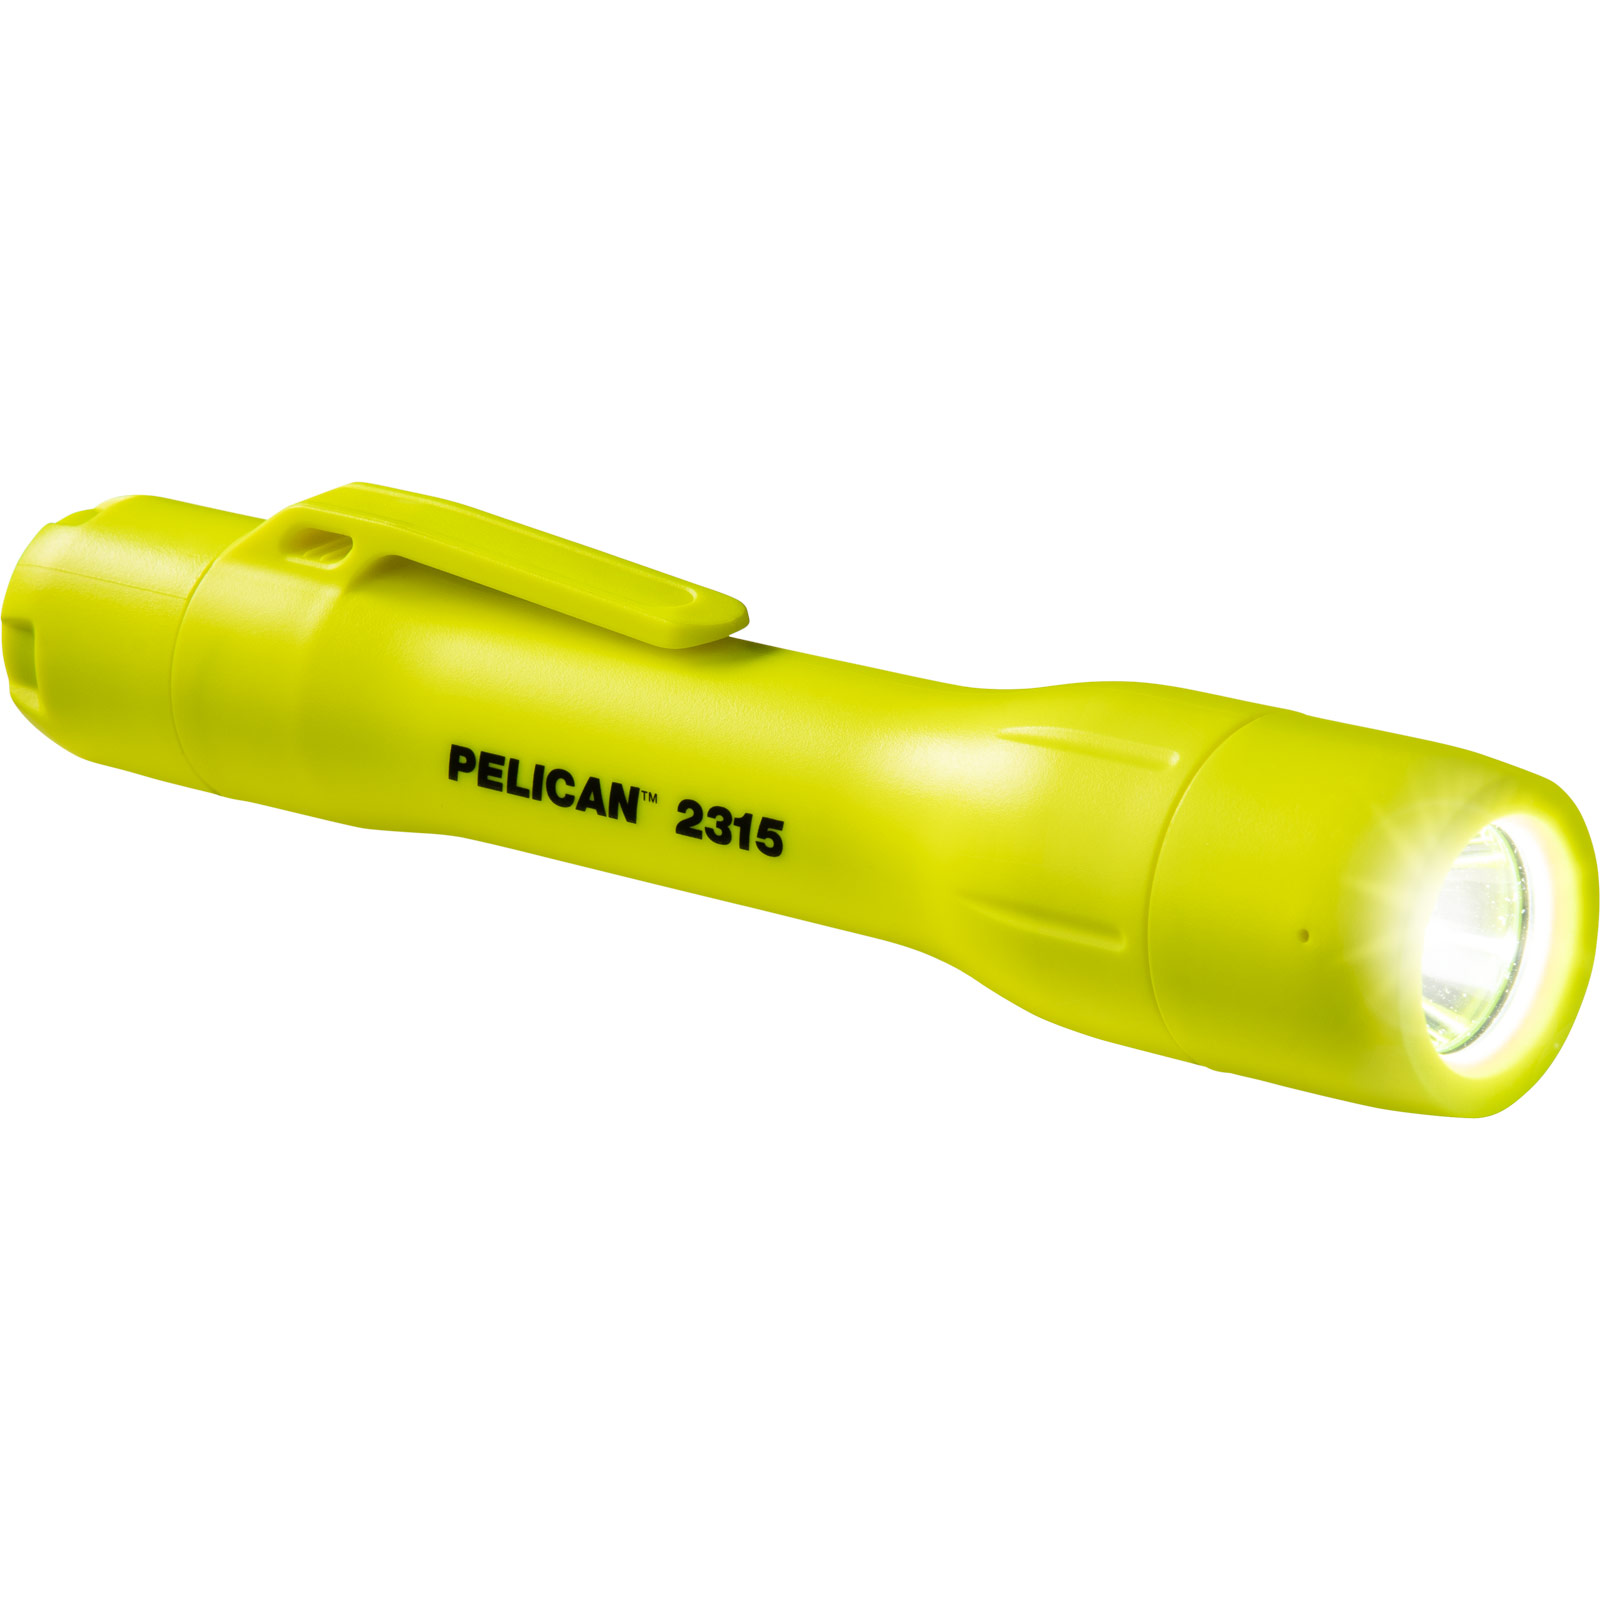 pelican 2315 safety flashlight